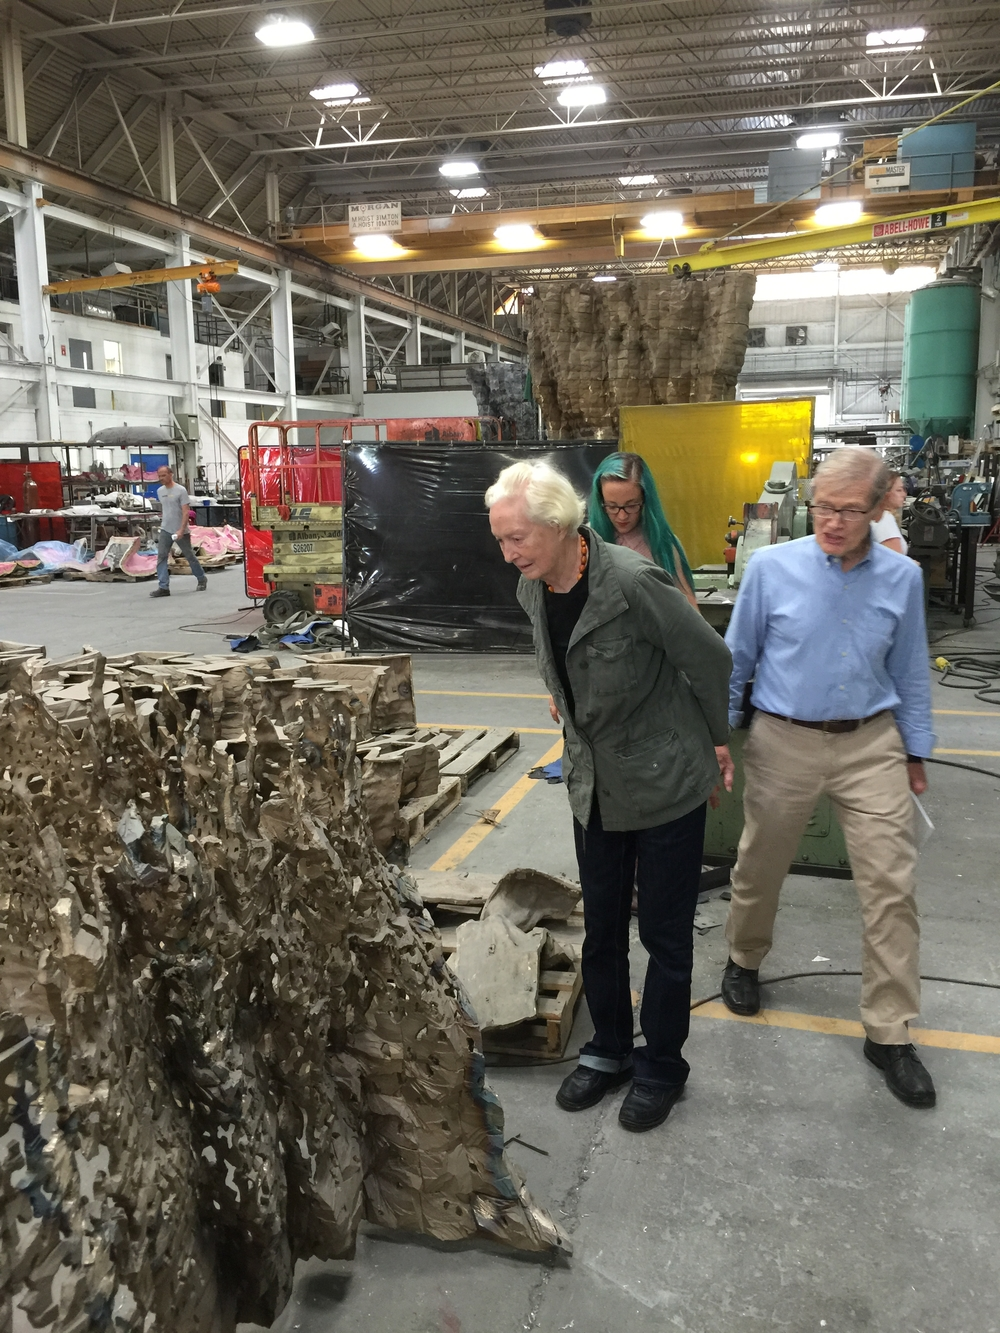 The foundry is working on a nice work for my colleage, Ursula von Rydingsvard. Here I am with Mr. Polich and Ms. Minor examining her work.